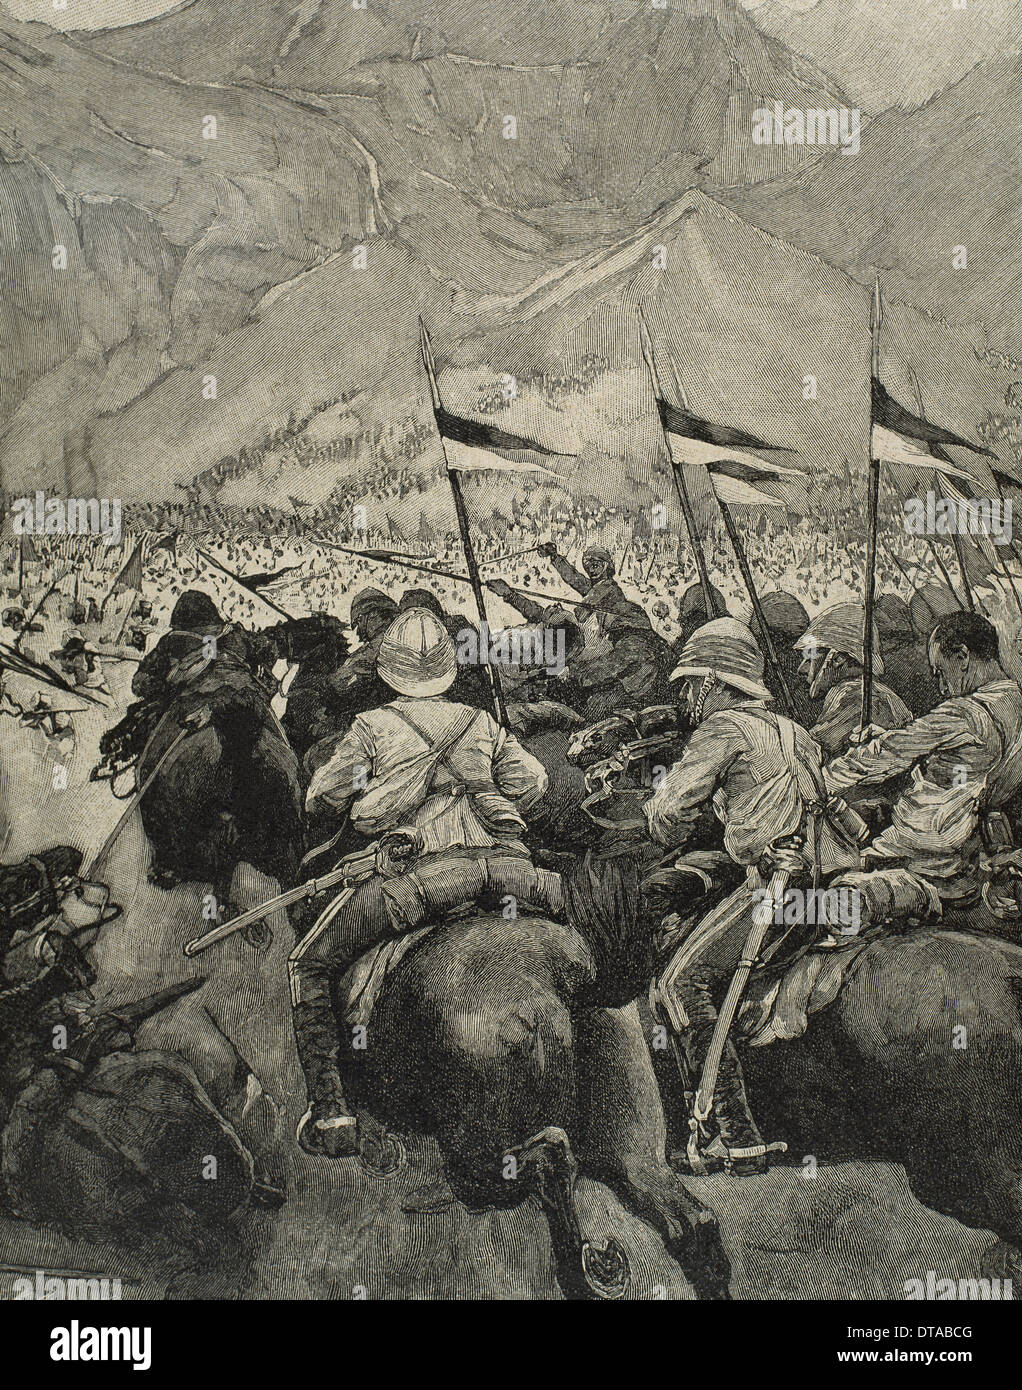 Africa. Colonialism. Charging of the English cavalry. Engraving in The Iberian Illustration, 1898. - Stock Image